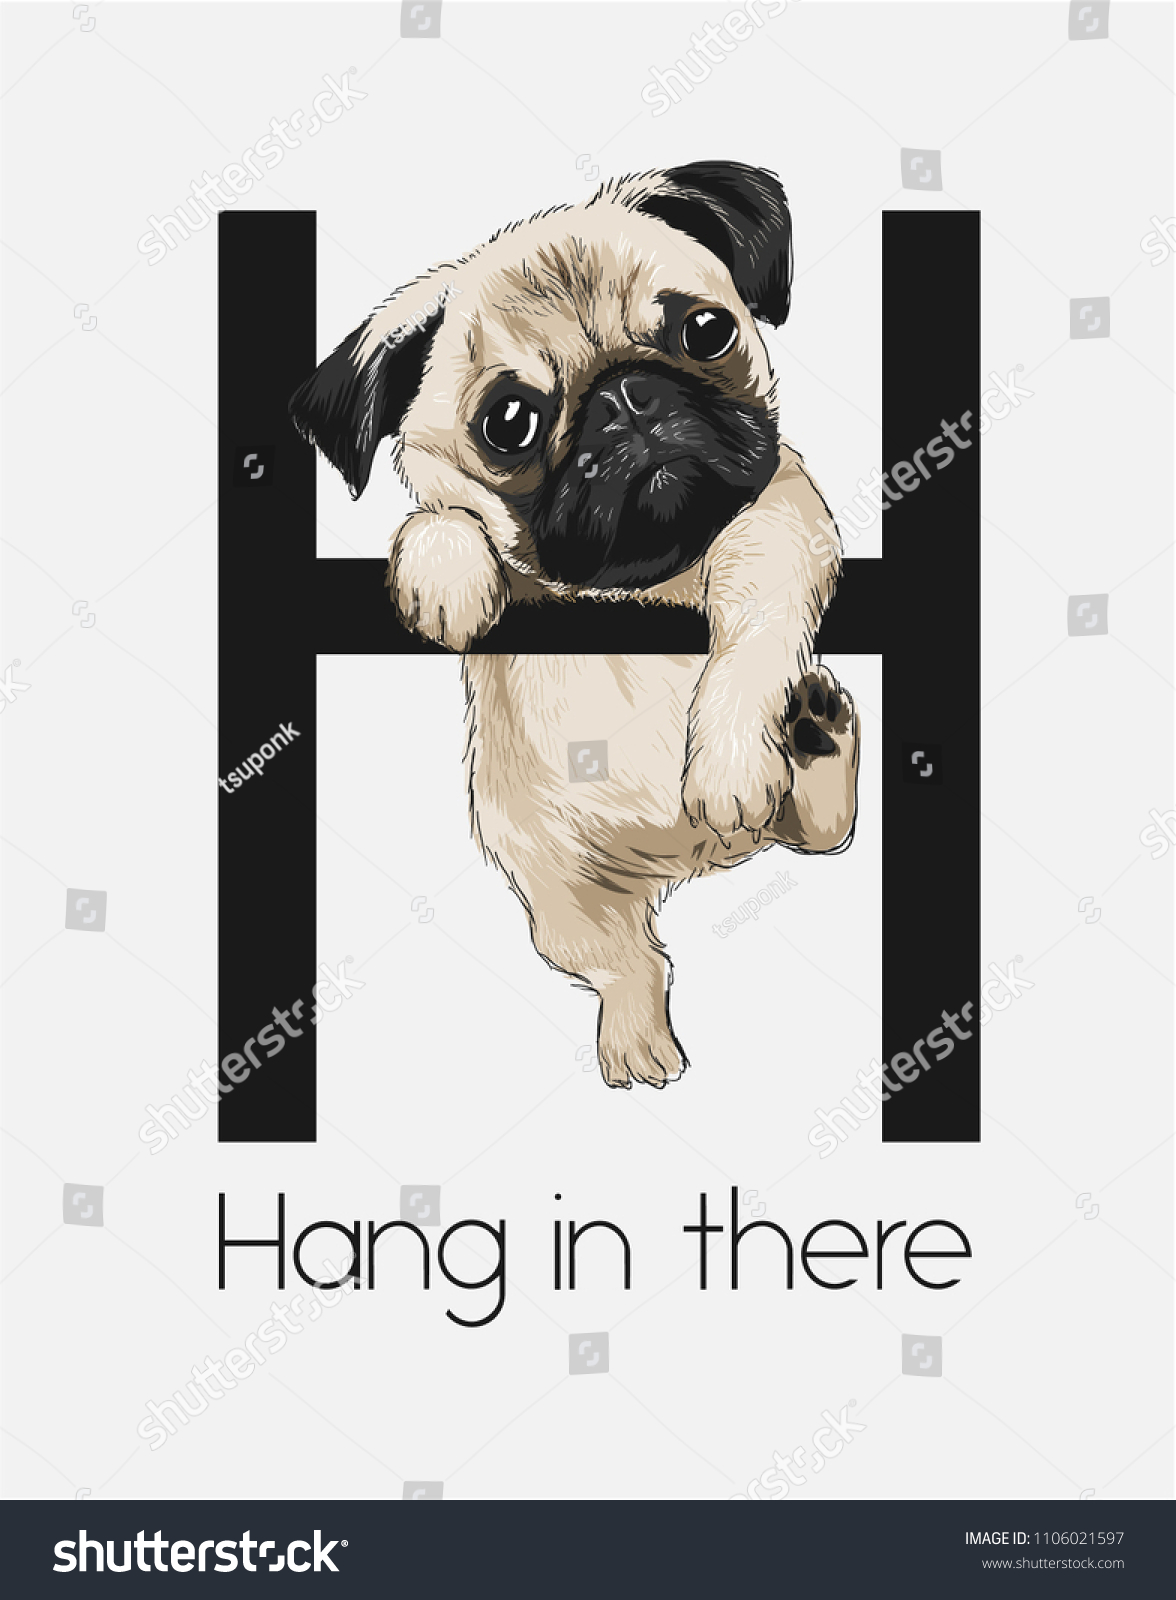 Funny Hang In There Pictures GIFs Tenor]